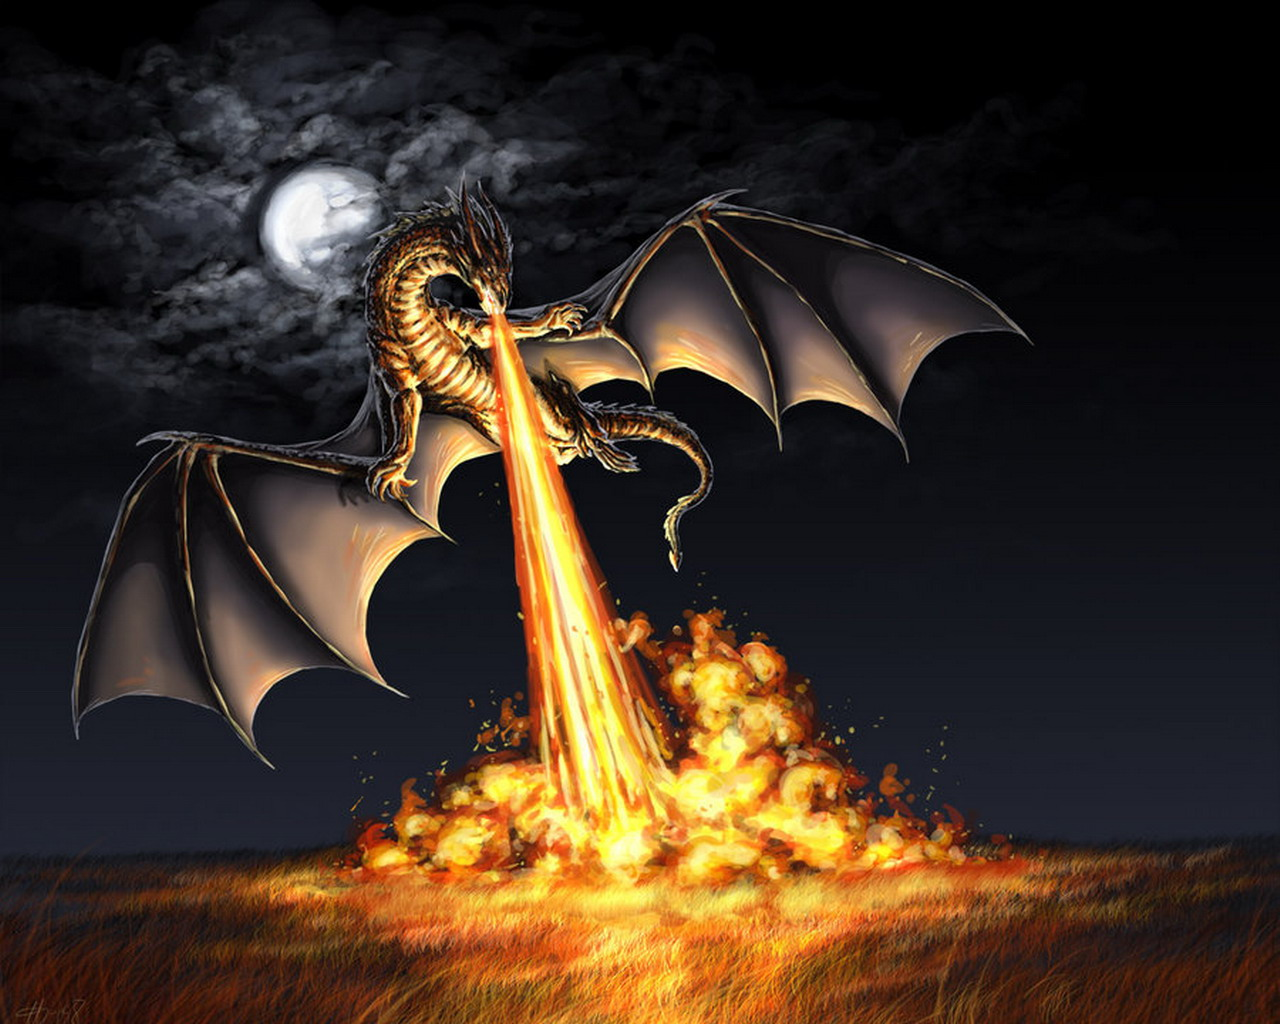 Dragon wallpapers and Dragon background for your computer desktop 1280x1024